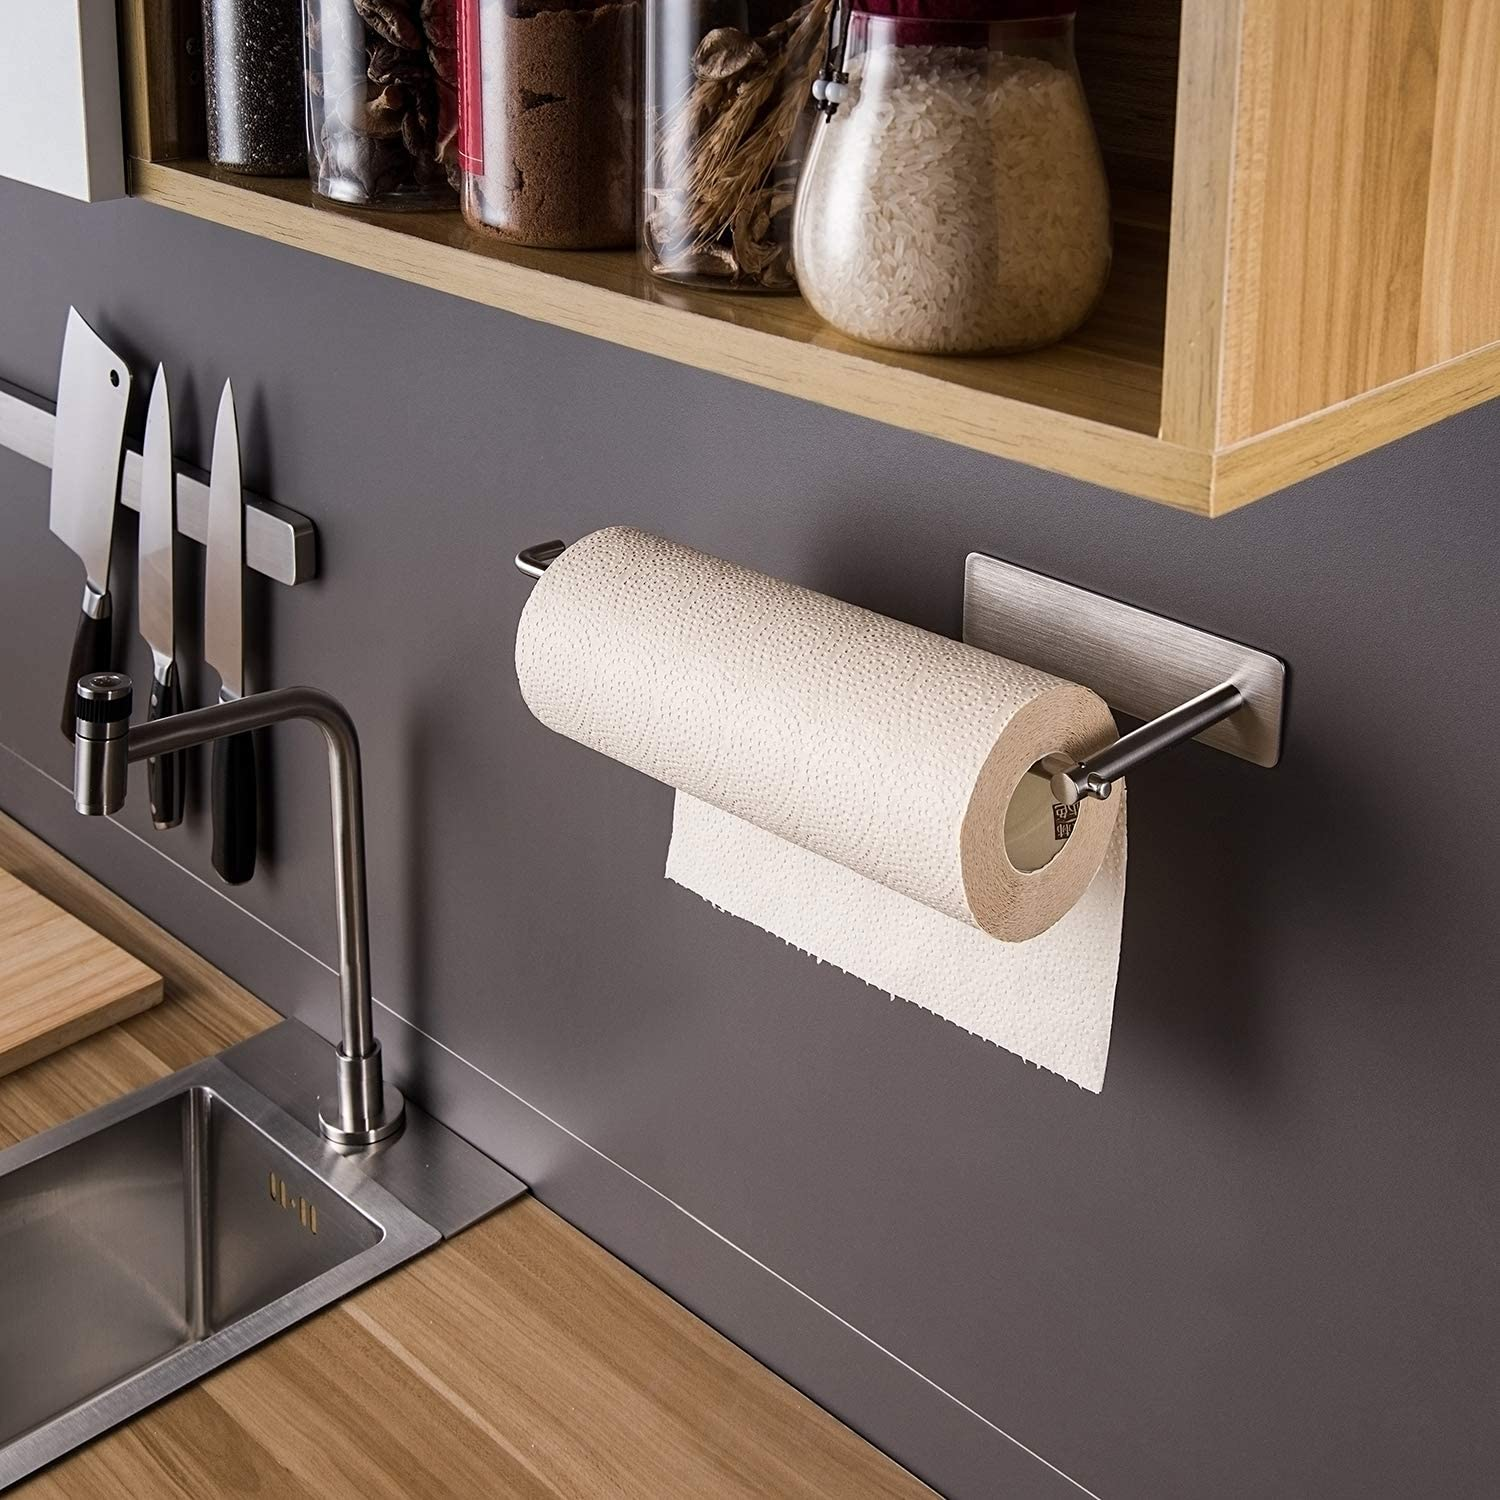 SUS304 Stainless Steel SUNTECH Paper Towel Holder Under Kitchen Cabinet Self Adhesive Matte Black Towel Paper Holder Stick on Wall